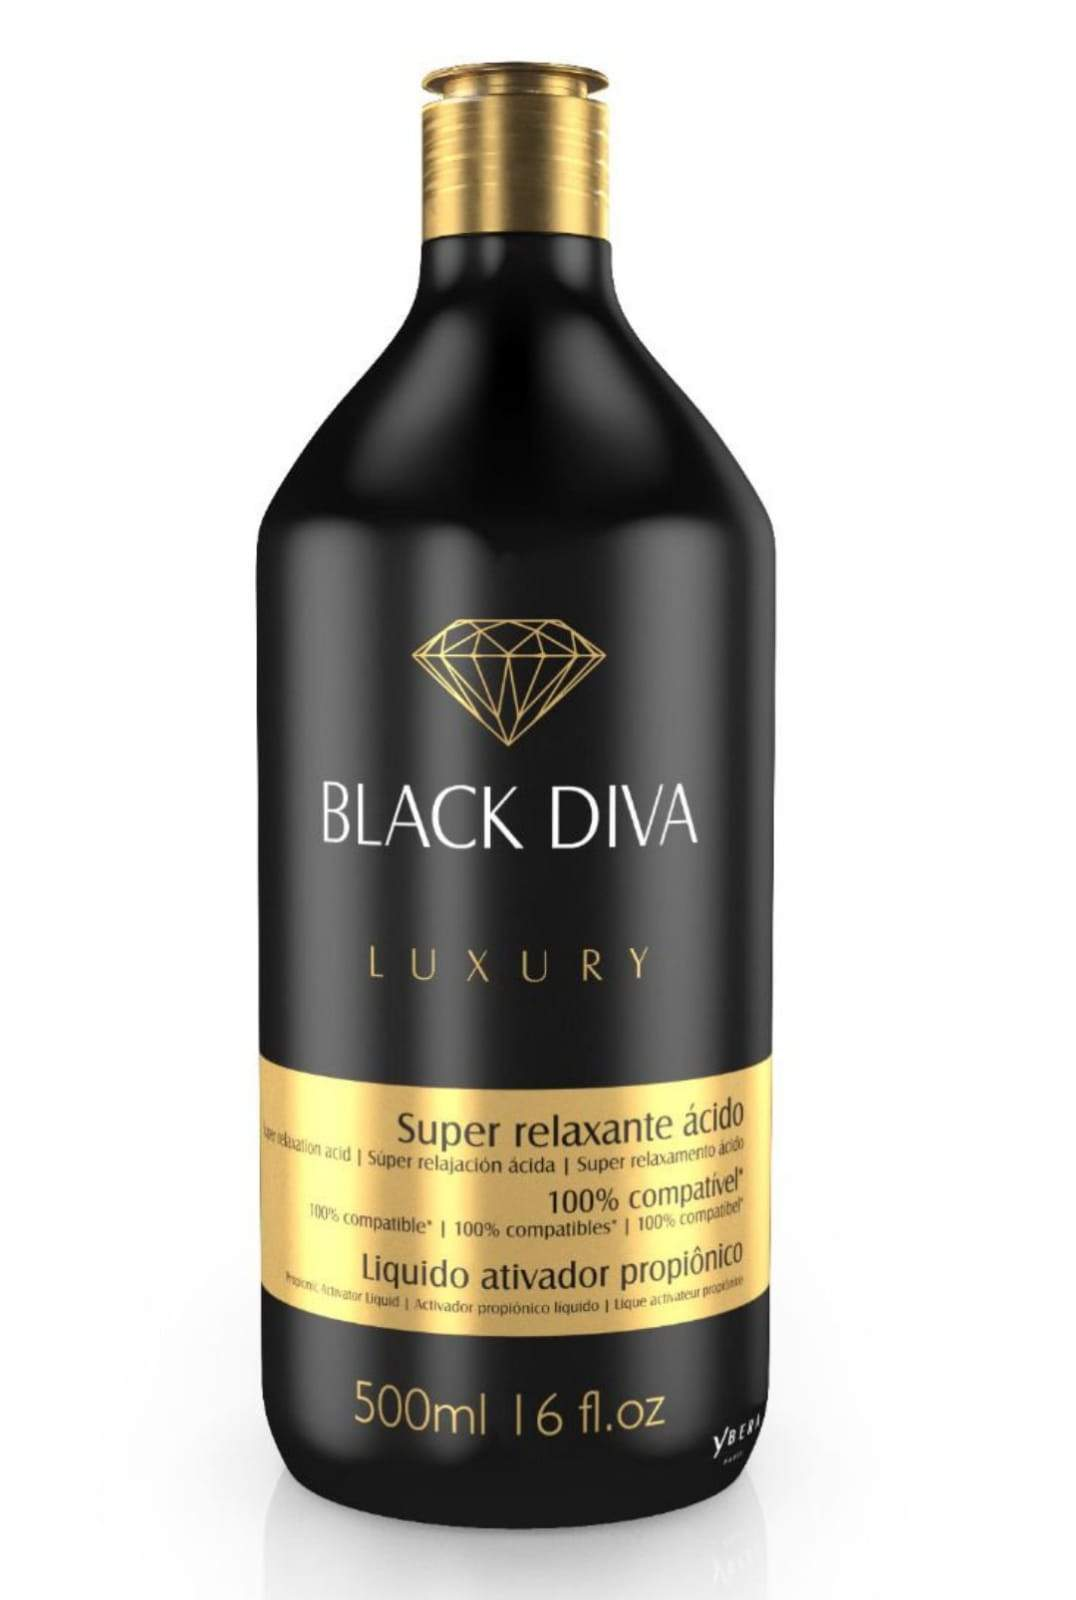 Black Diva Propionic Activating Liquid Luxury Hair Treatment 500ml - Ybera Paris